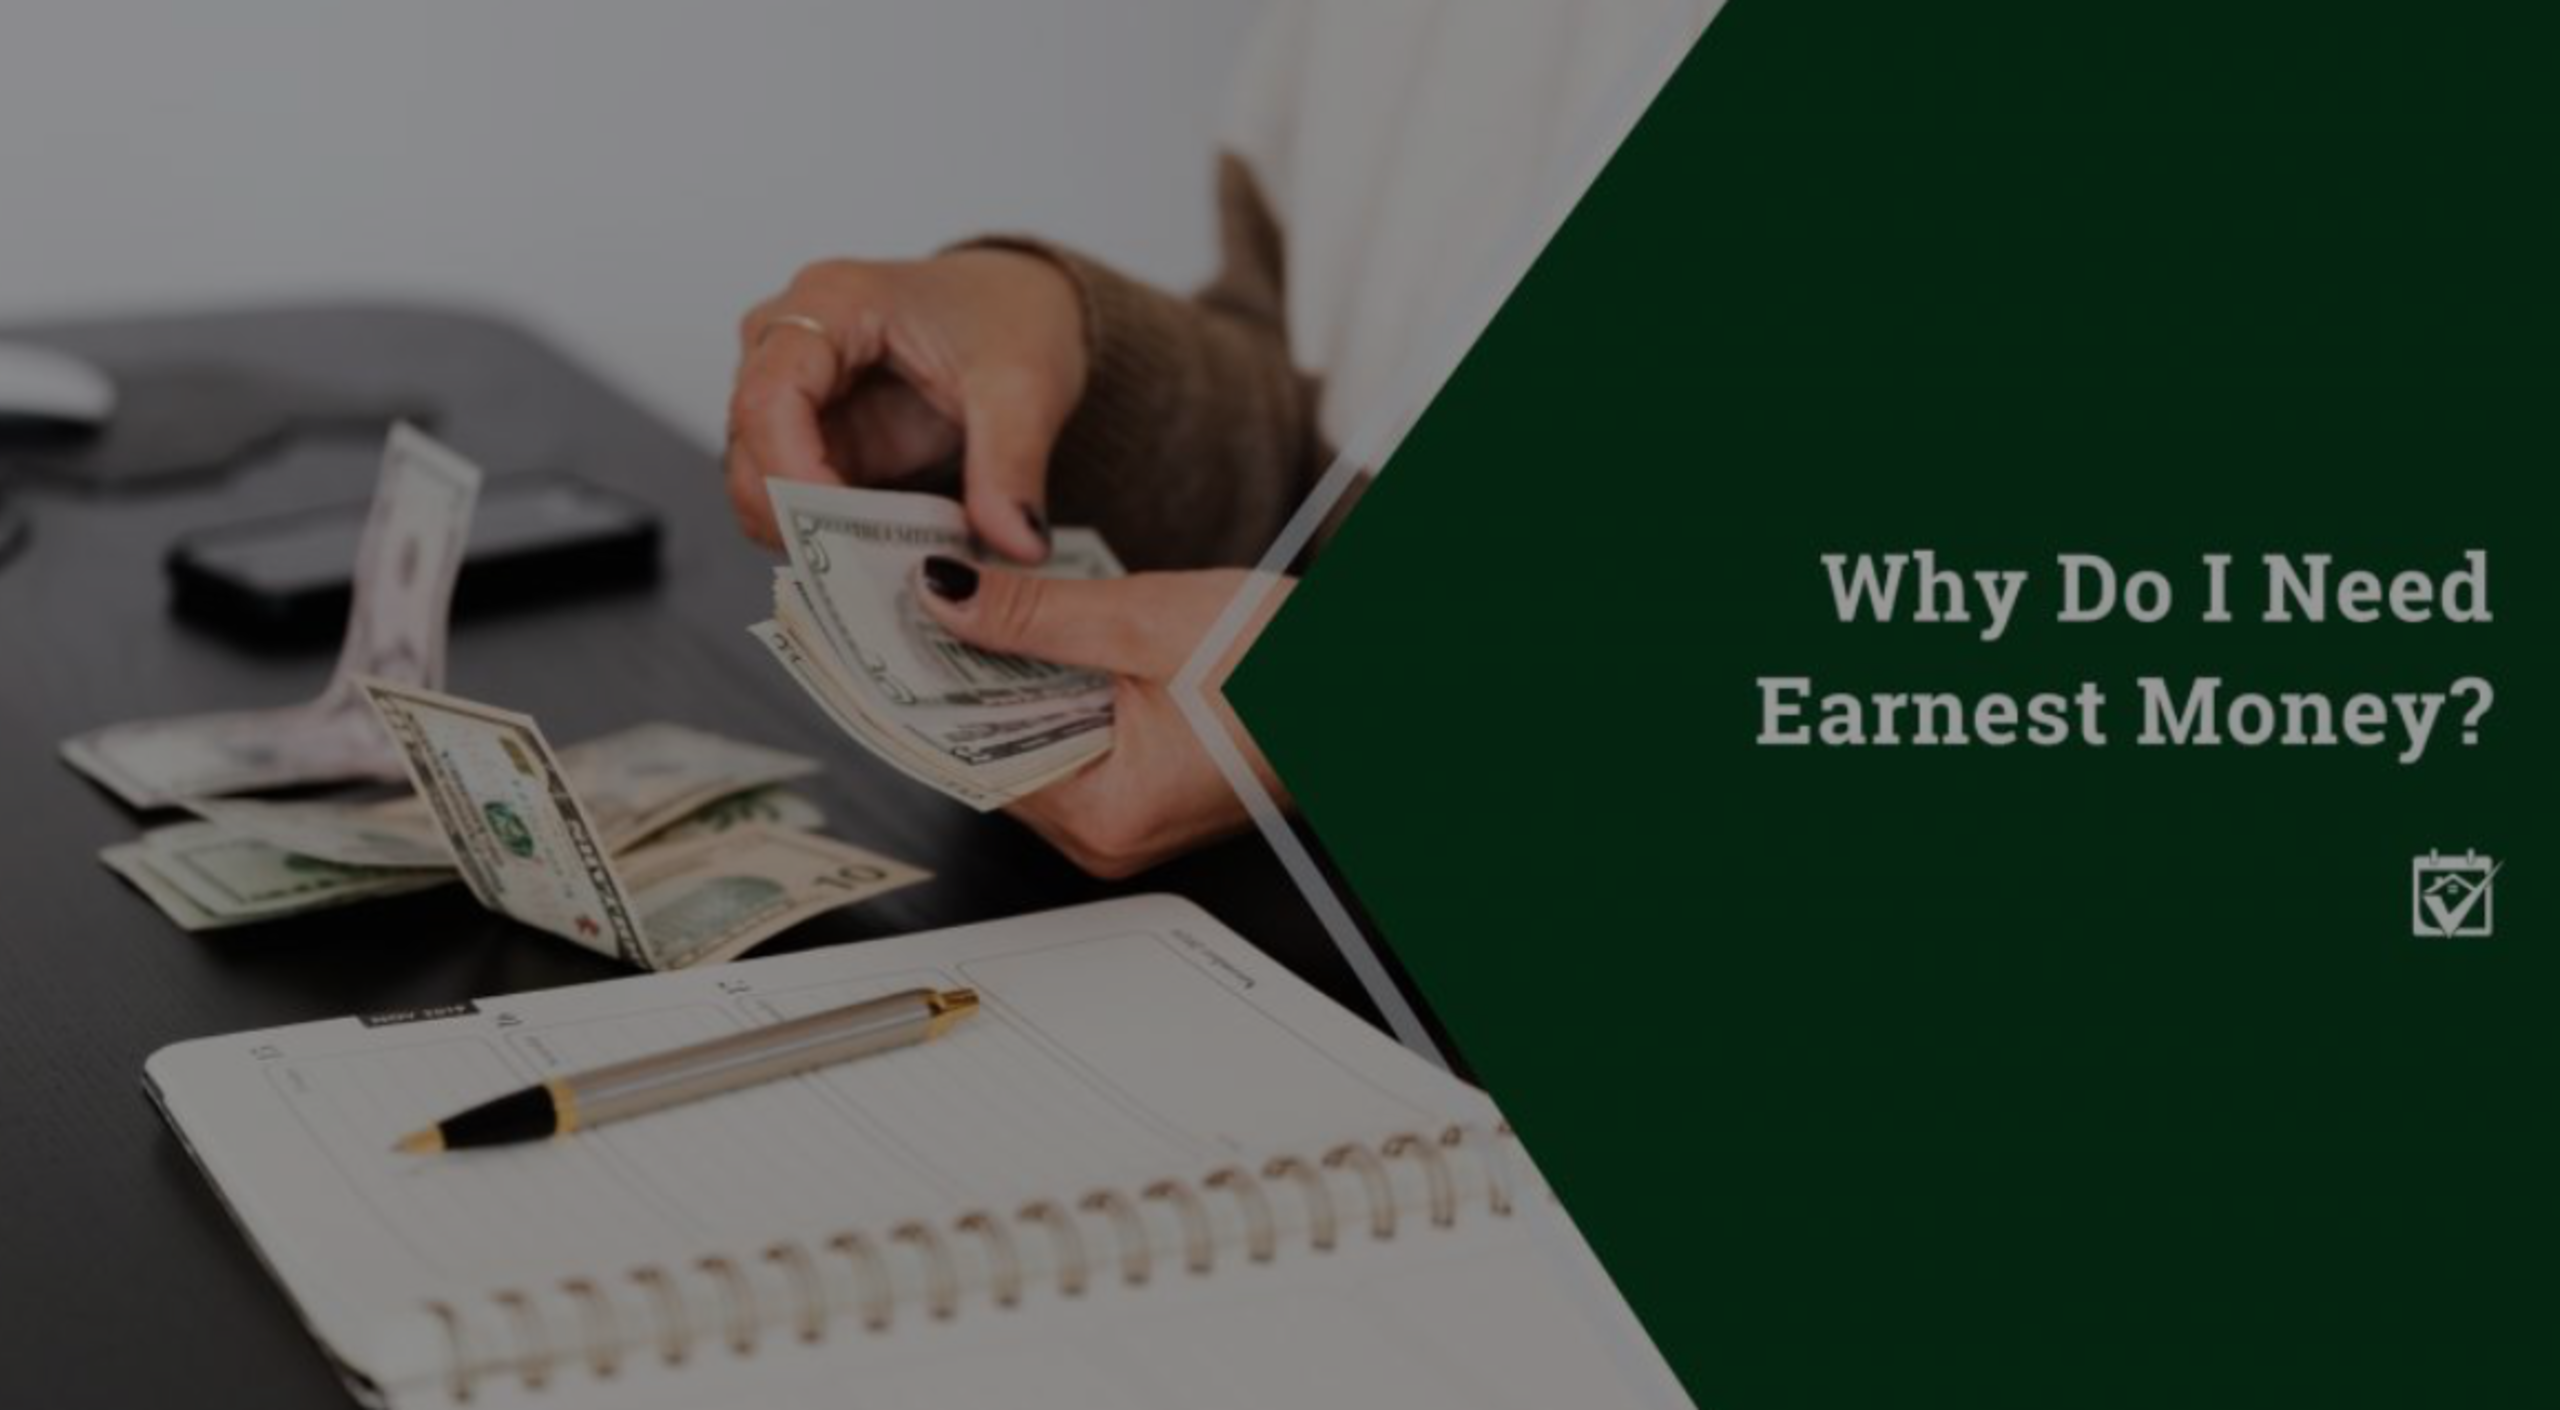 Why Do You Need Earnest Money?